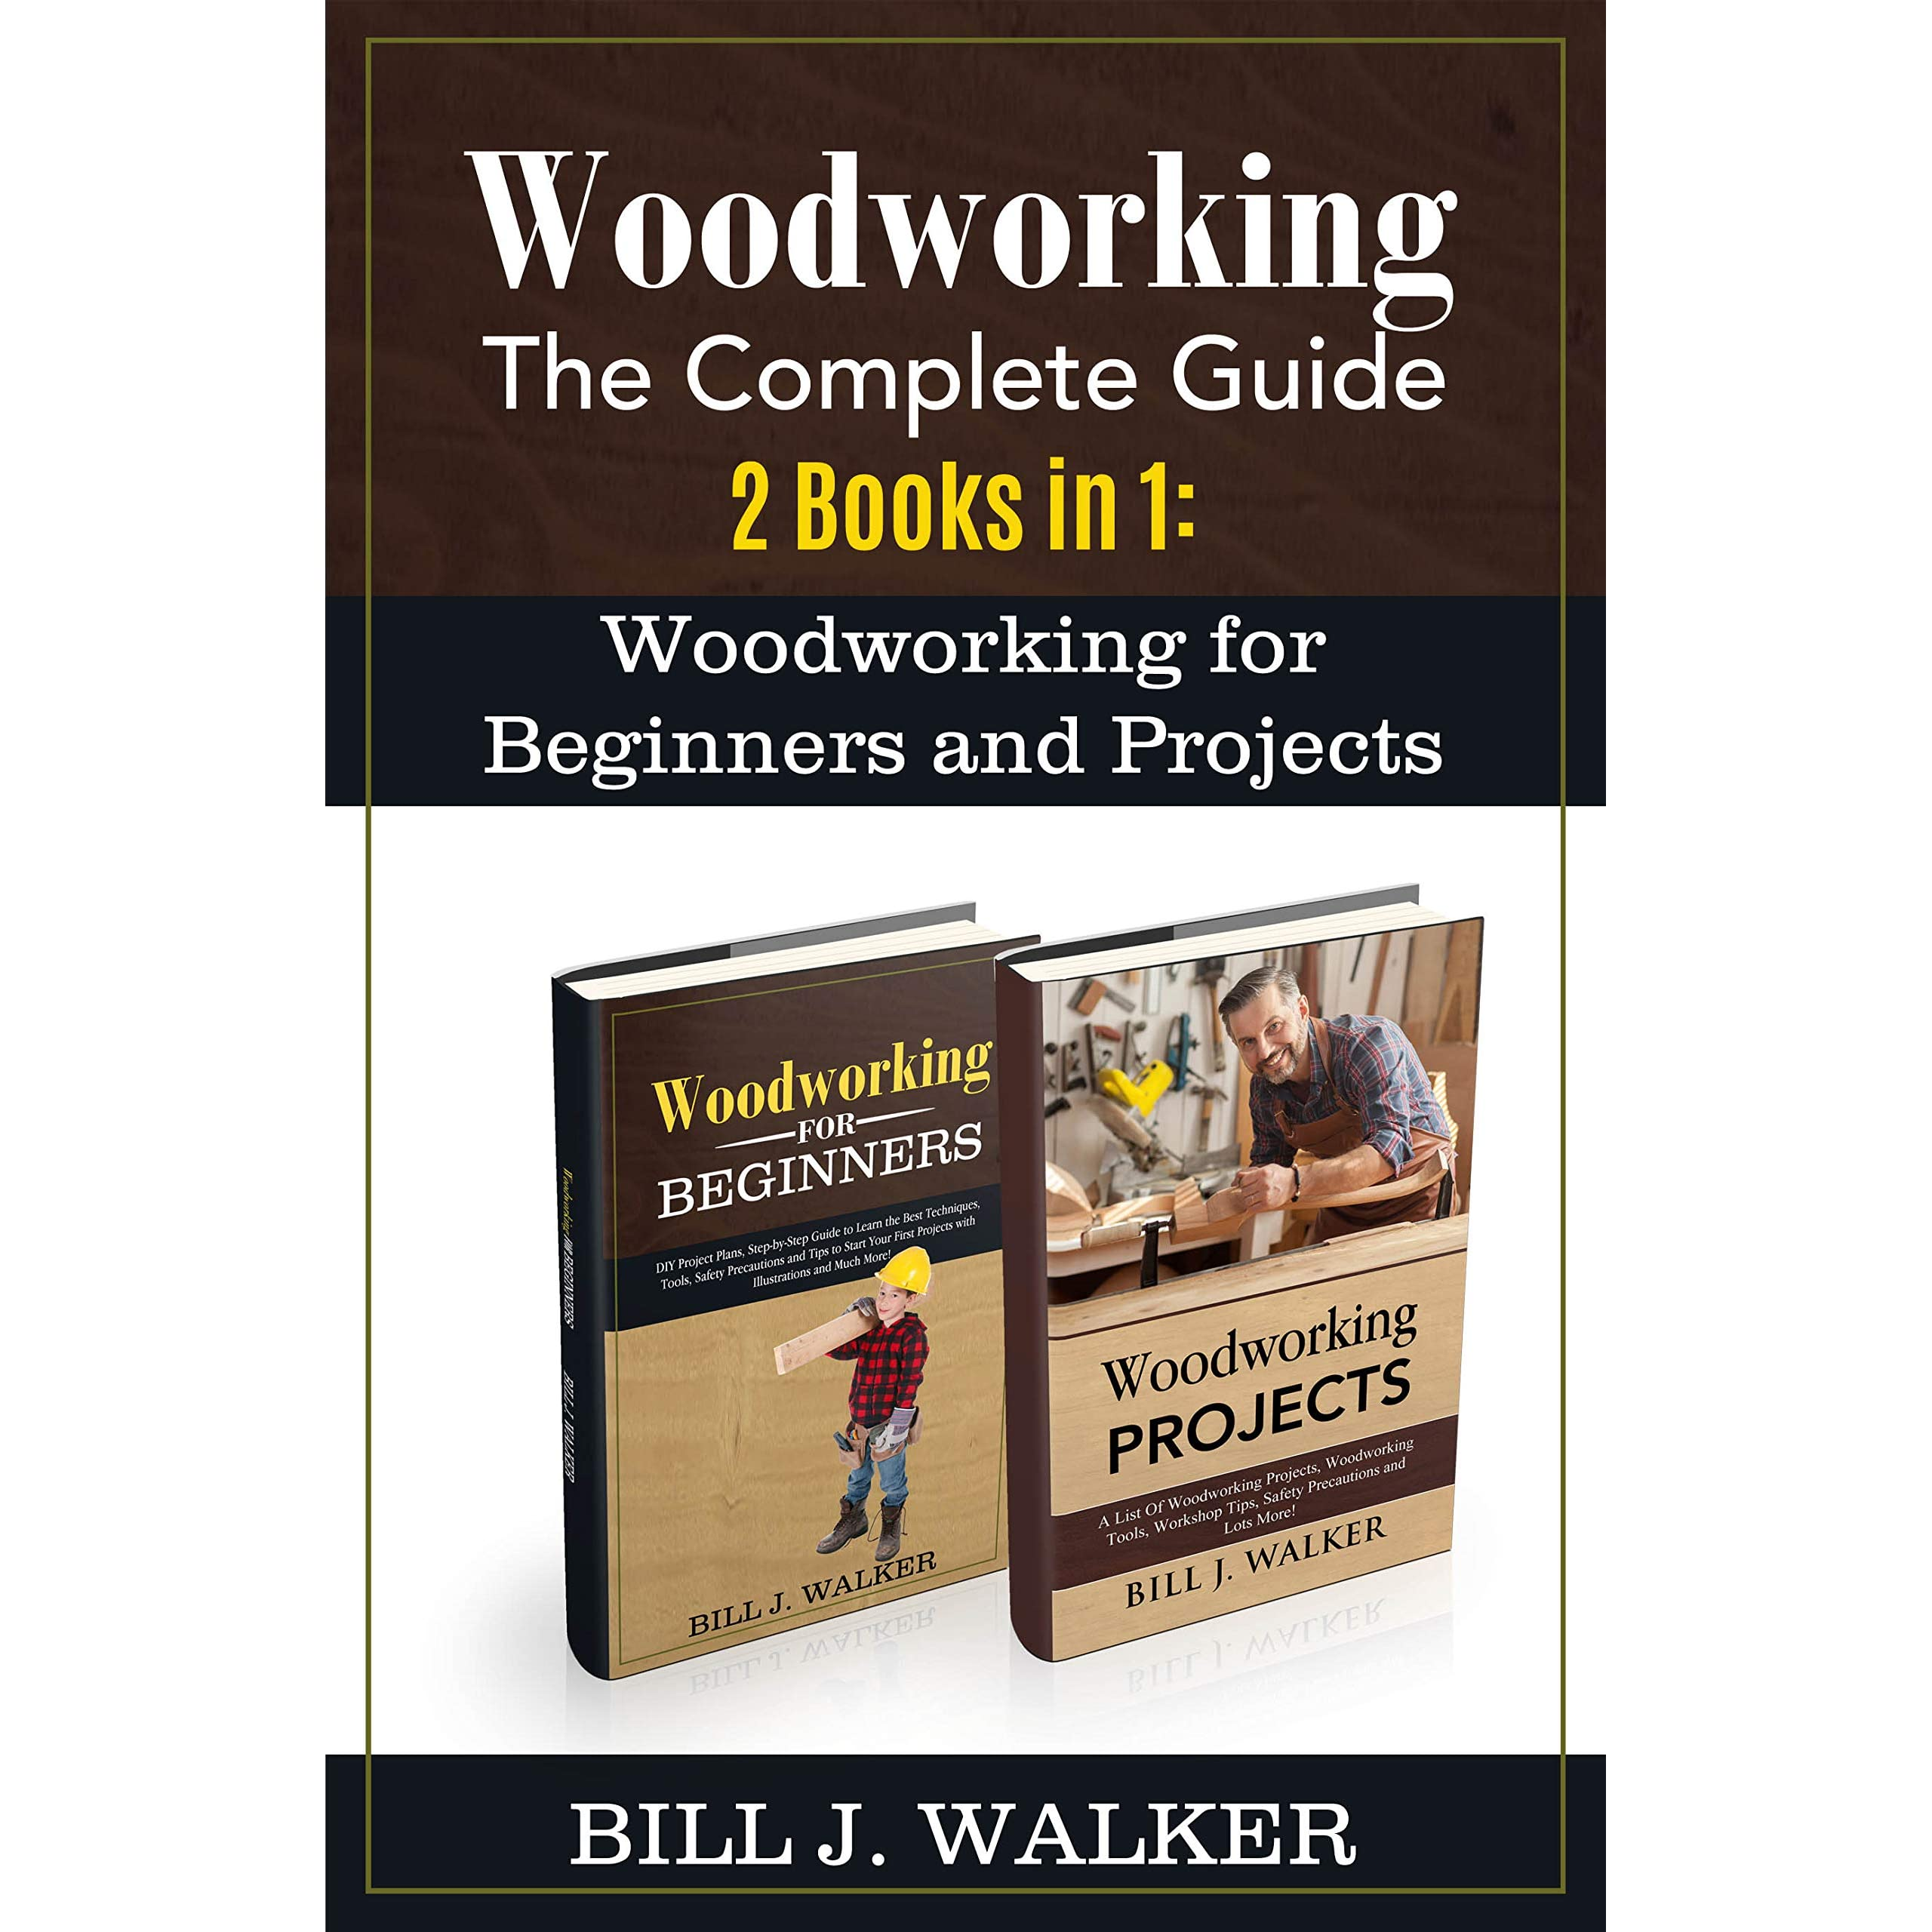 Woodworking The Complete Guide 2 Books In 1 Woodworking For Beginners And Projects By Bill J Walker